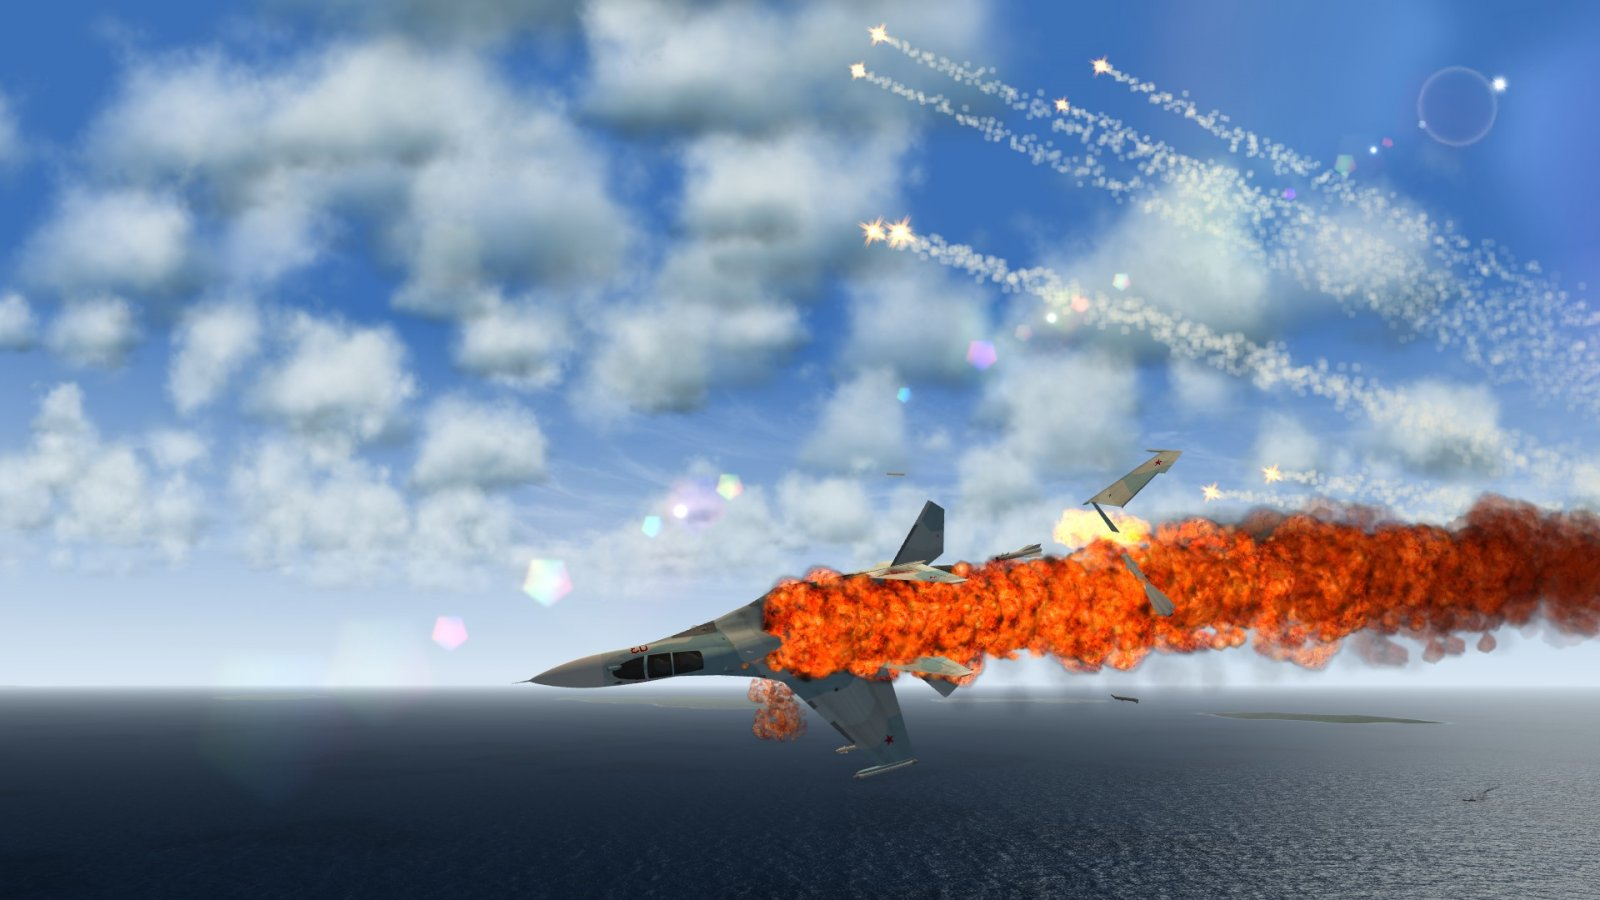 I guess the flares didn't work for the Su-30...